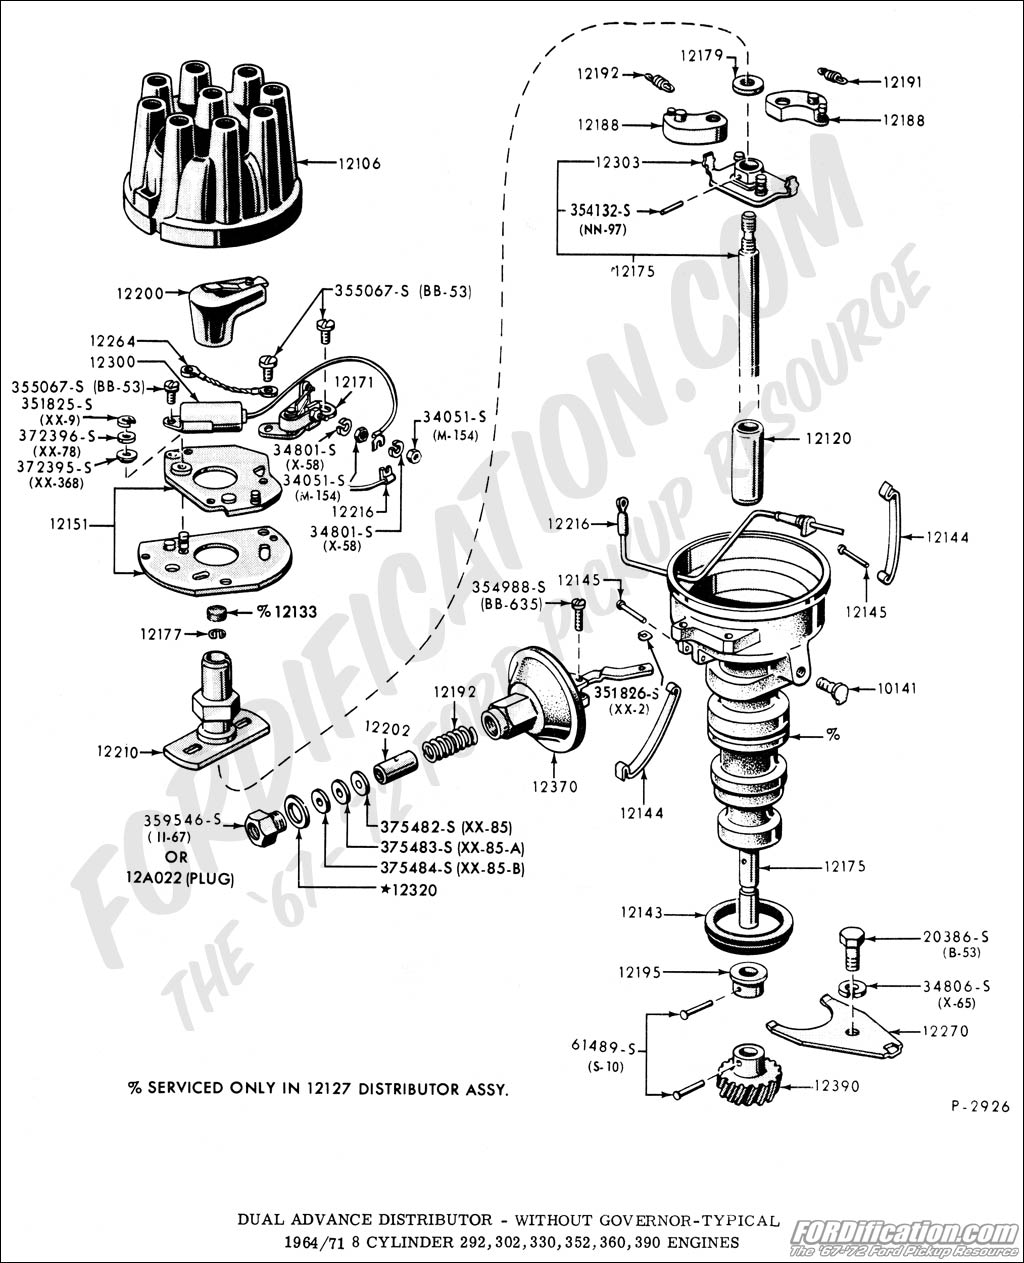 ignition wiring for ford 302 engine ford truck technical drawings and schematics - section i ... msd 6a ignition wiring diagram for ford 302